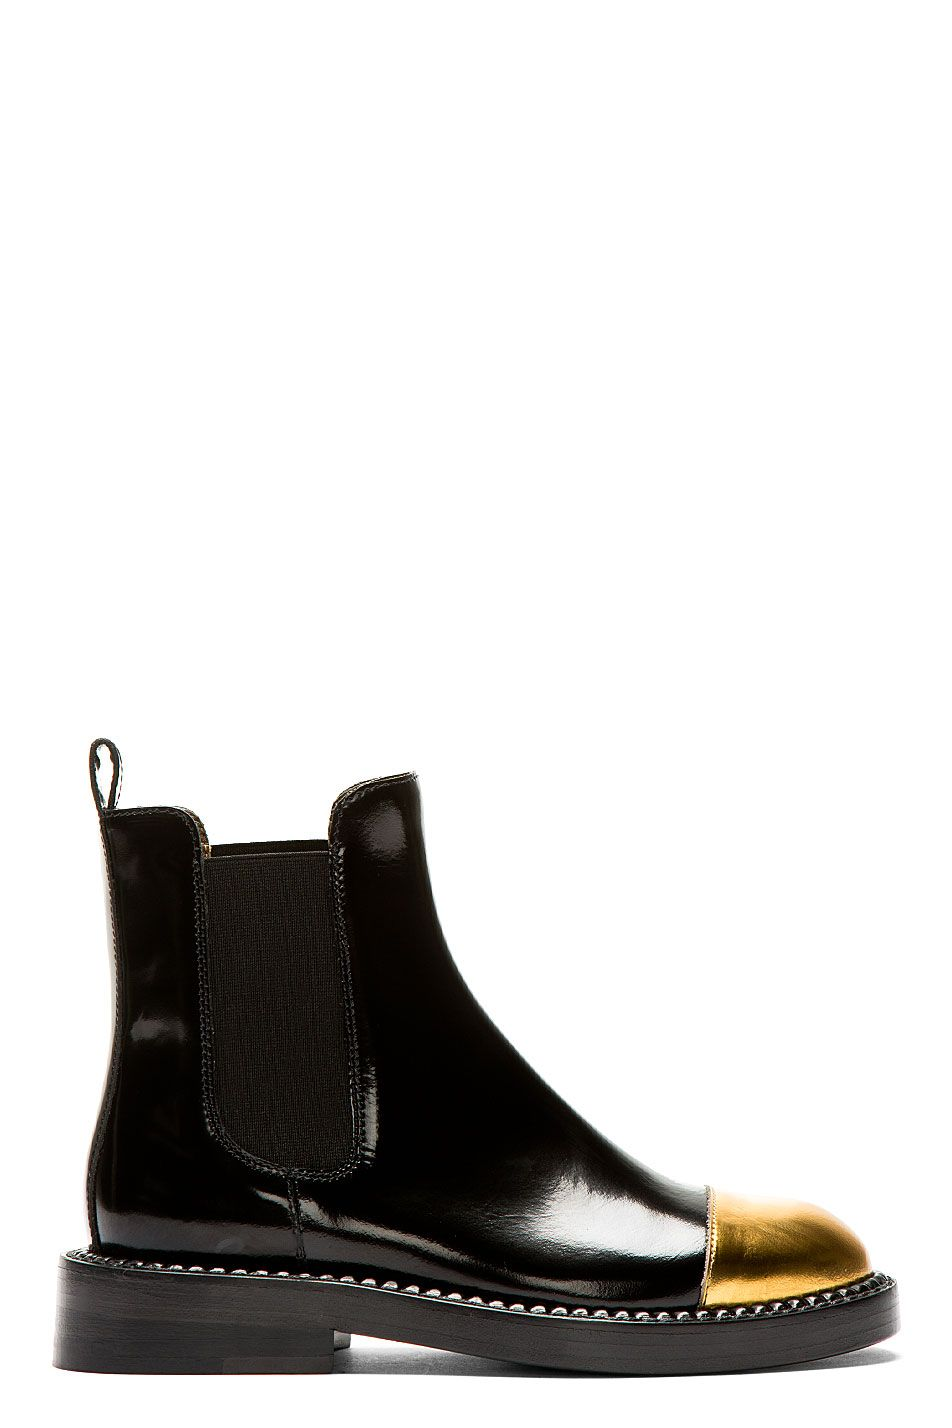 6b1d1756c5 Marni Black Leather Gold Toe Chelsea Boots on Vein - getVein.com ...